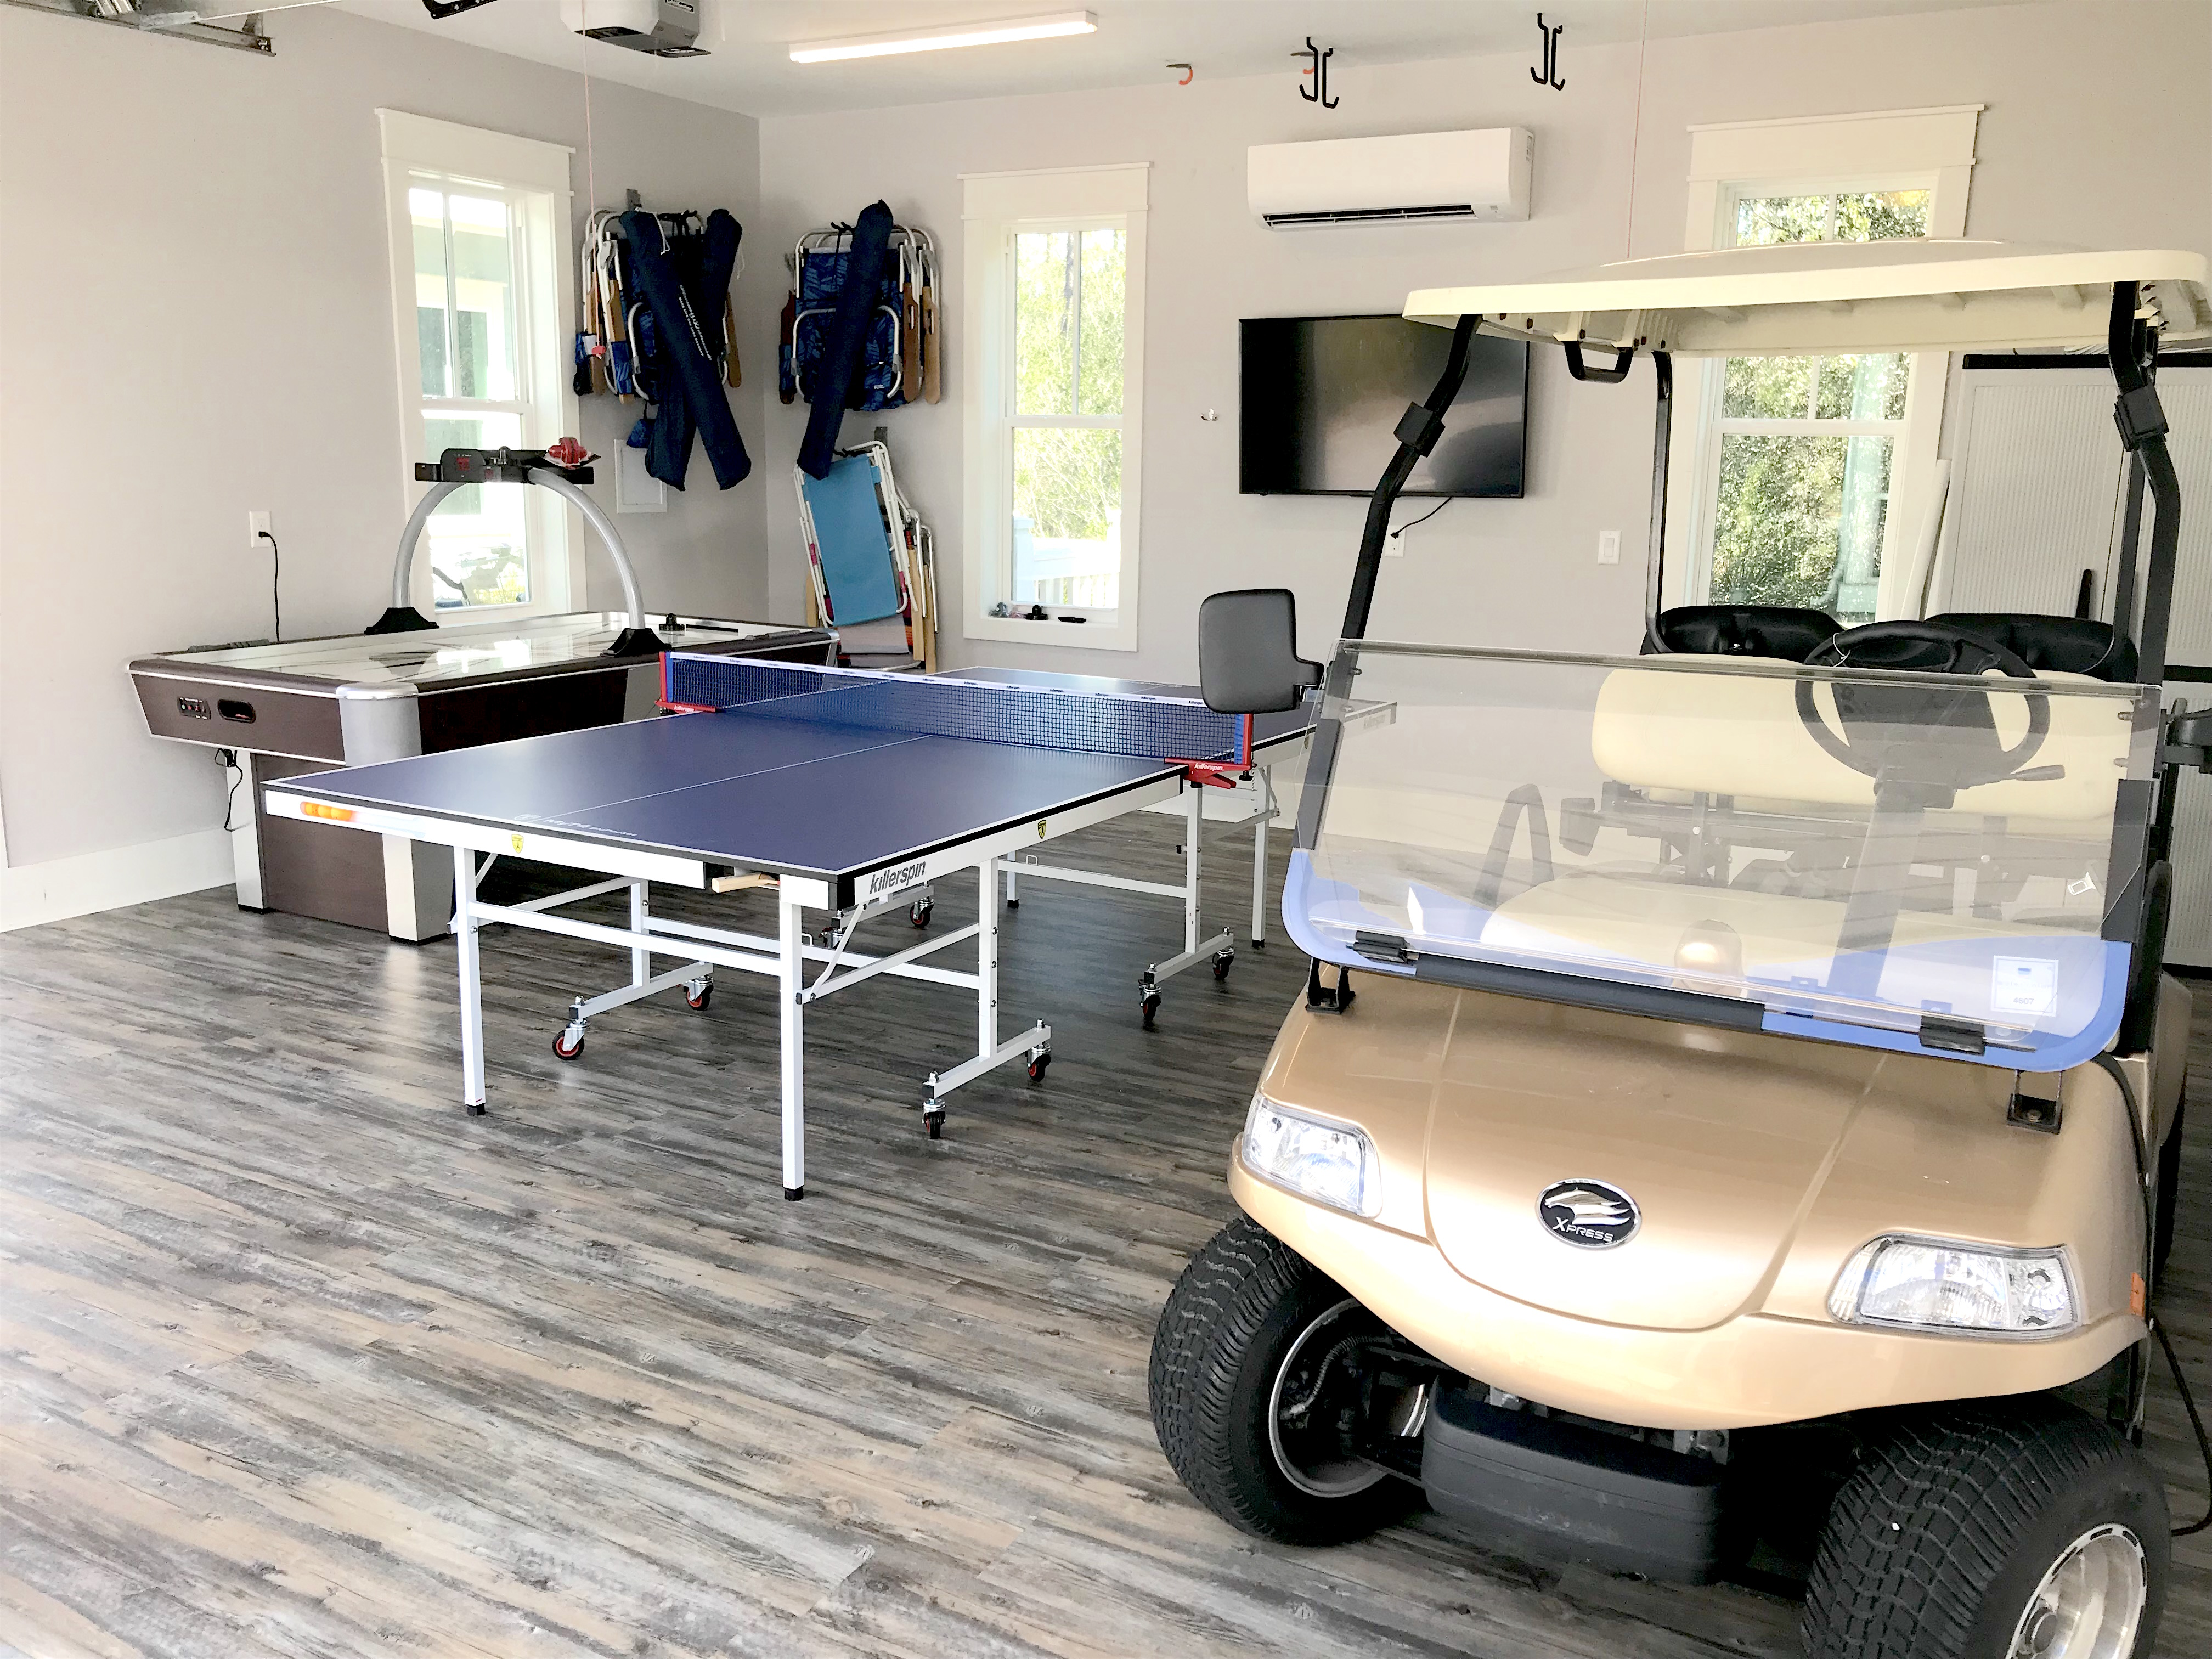 The garage has been converted into an air conditioned game room with a ping pong table, air hockey and TV.  Golf cart is also located in the garage.